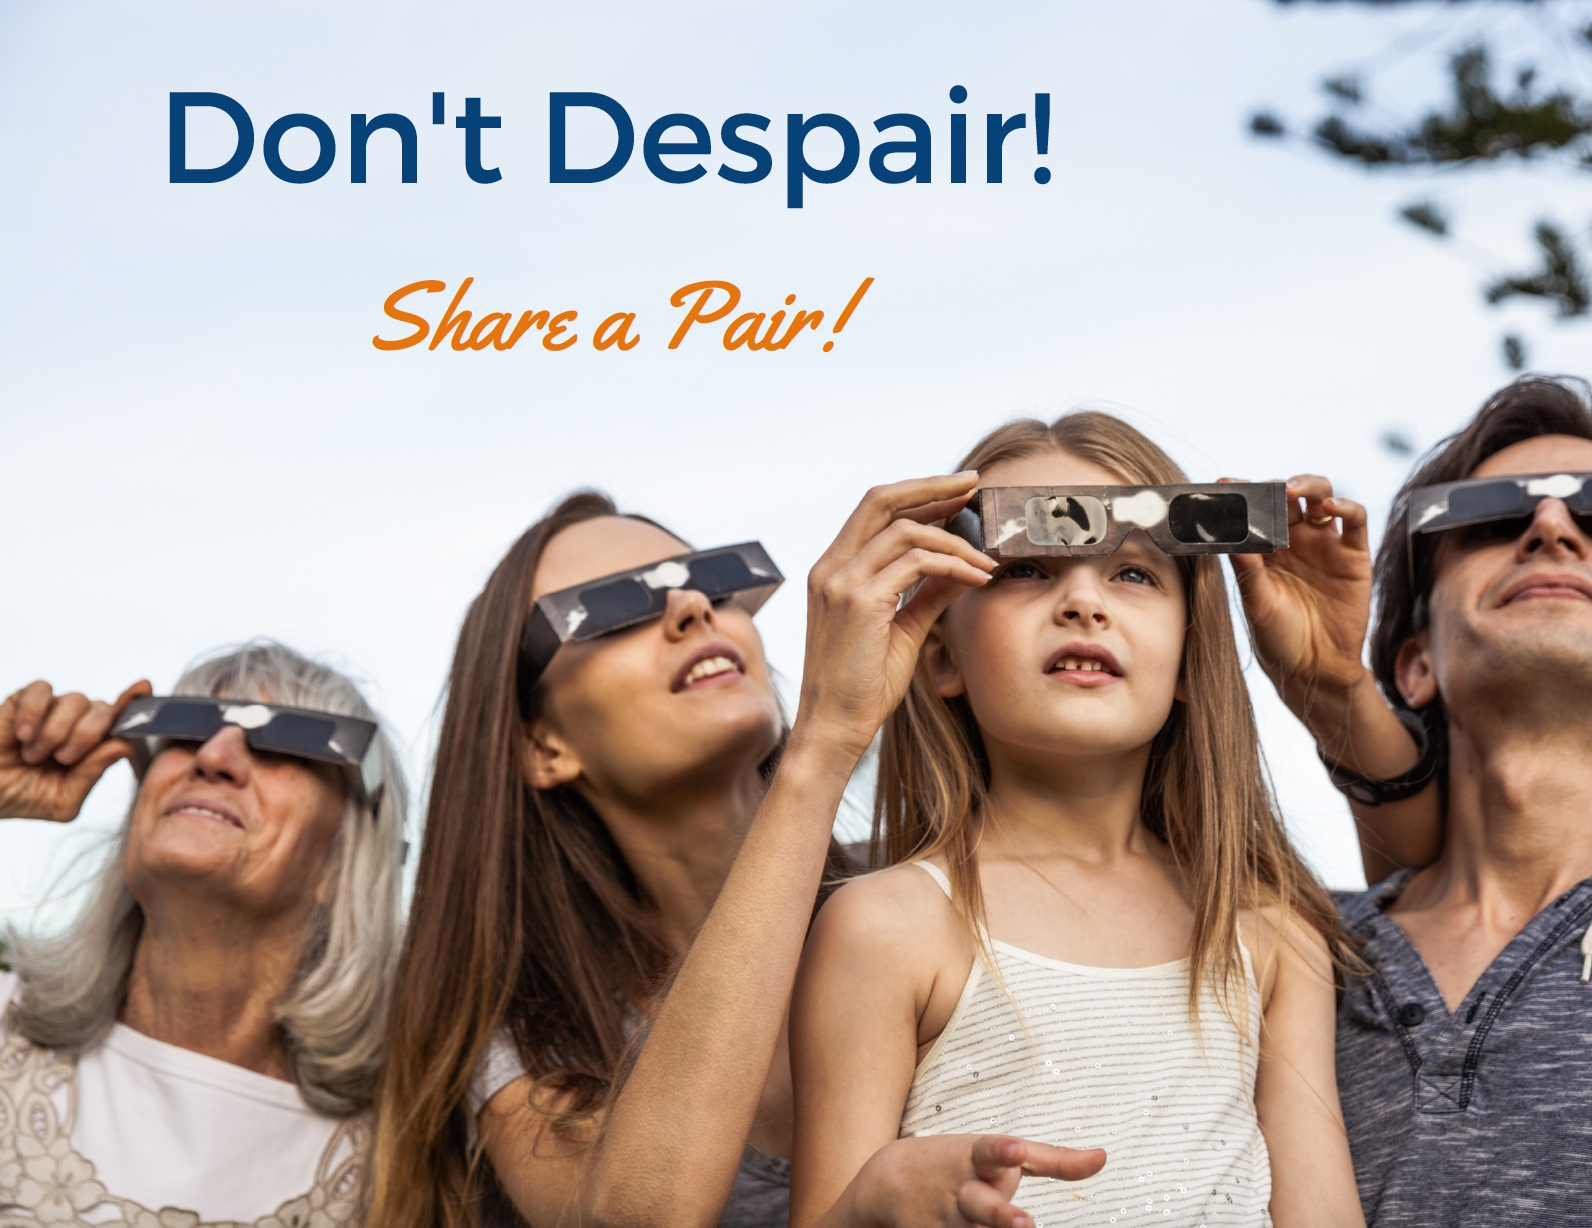 Share eclipse glasses to view partial eclipse